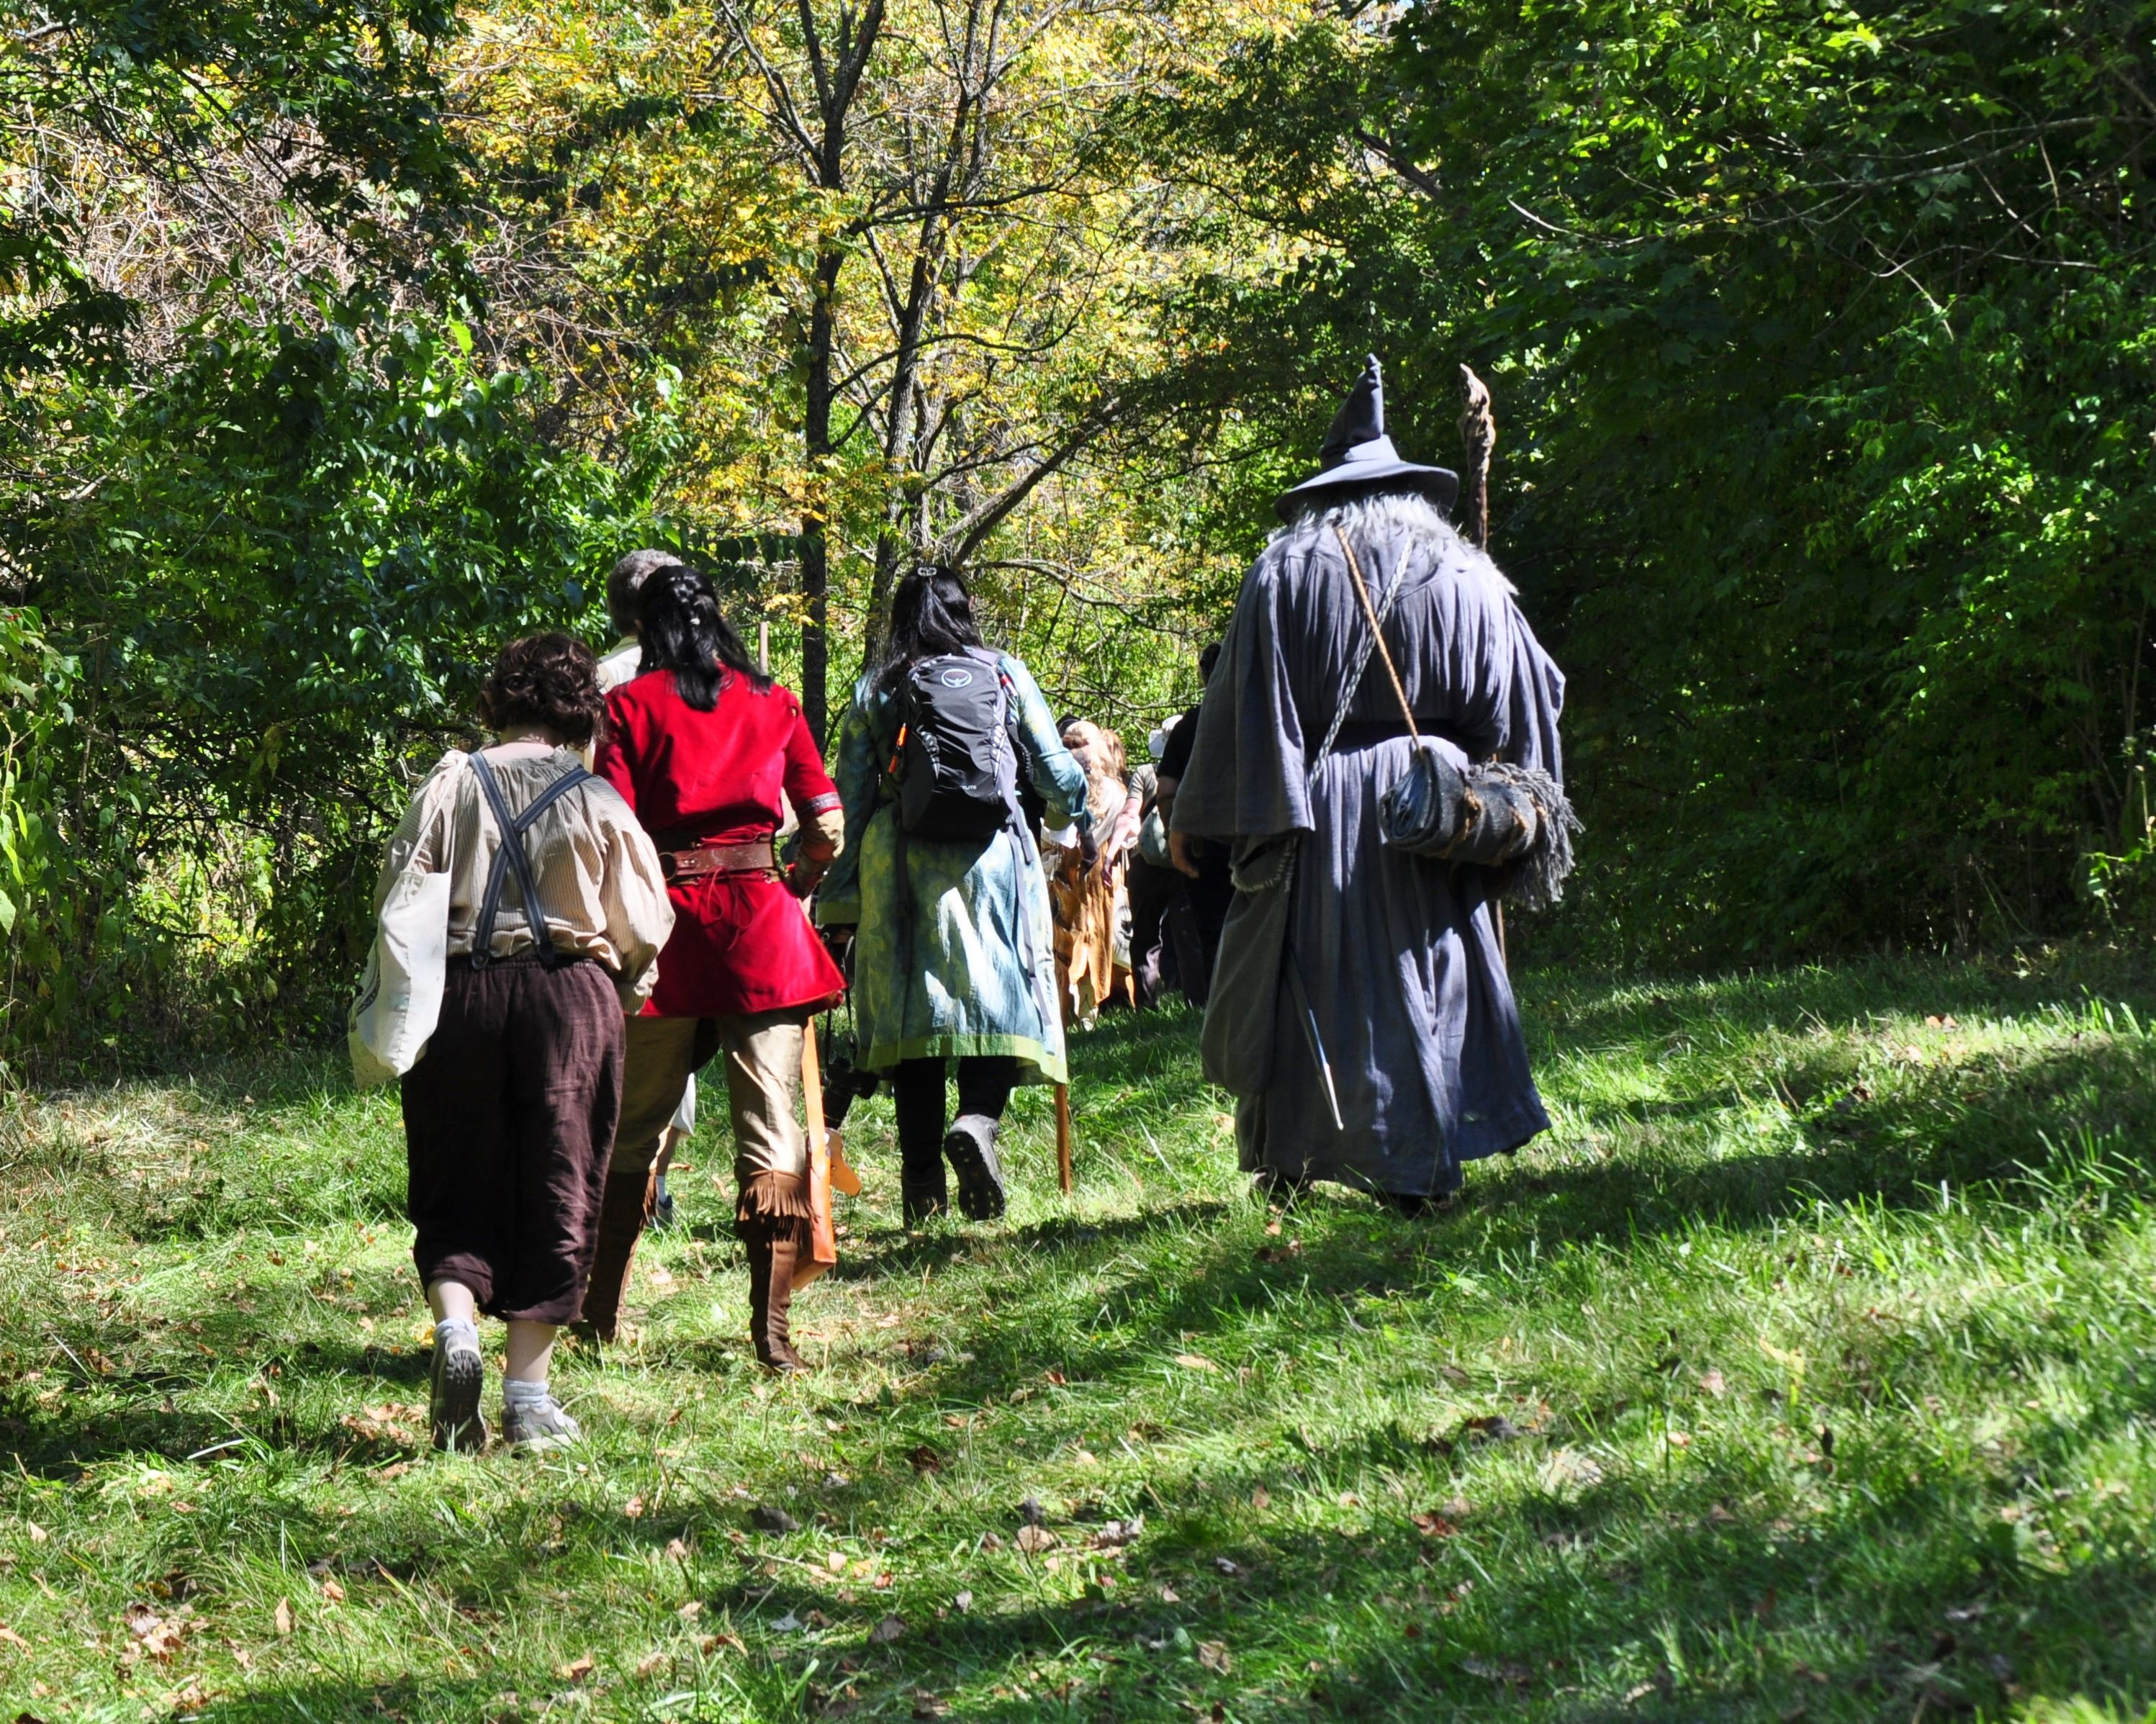 The Fellowship of the Ring ala AL3P 2014. Shaker Village, KY